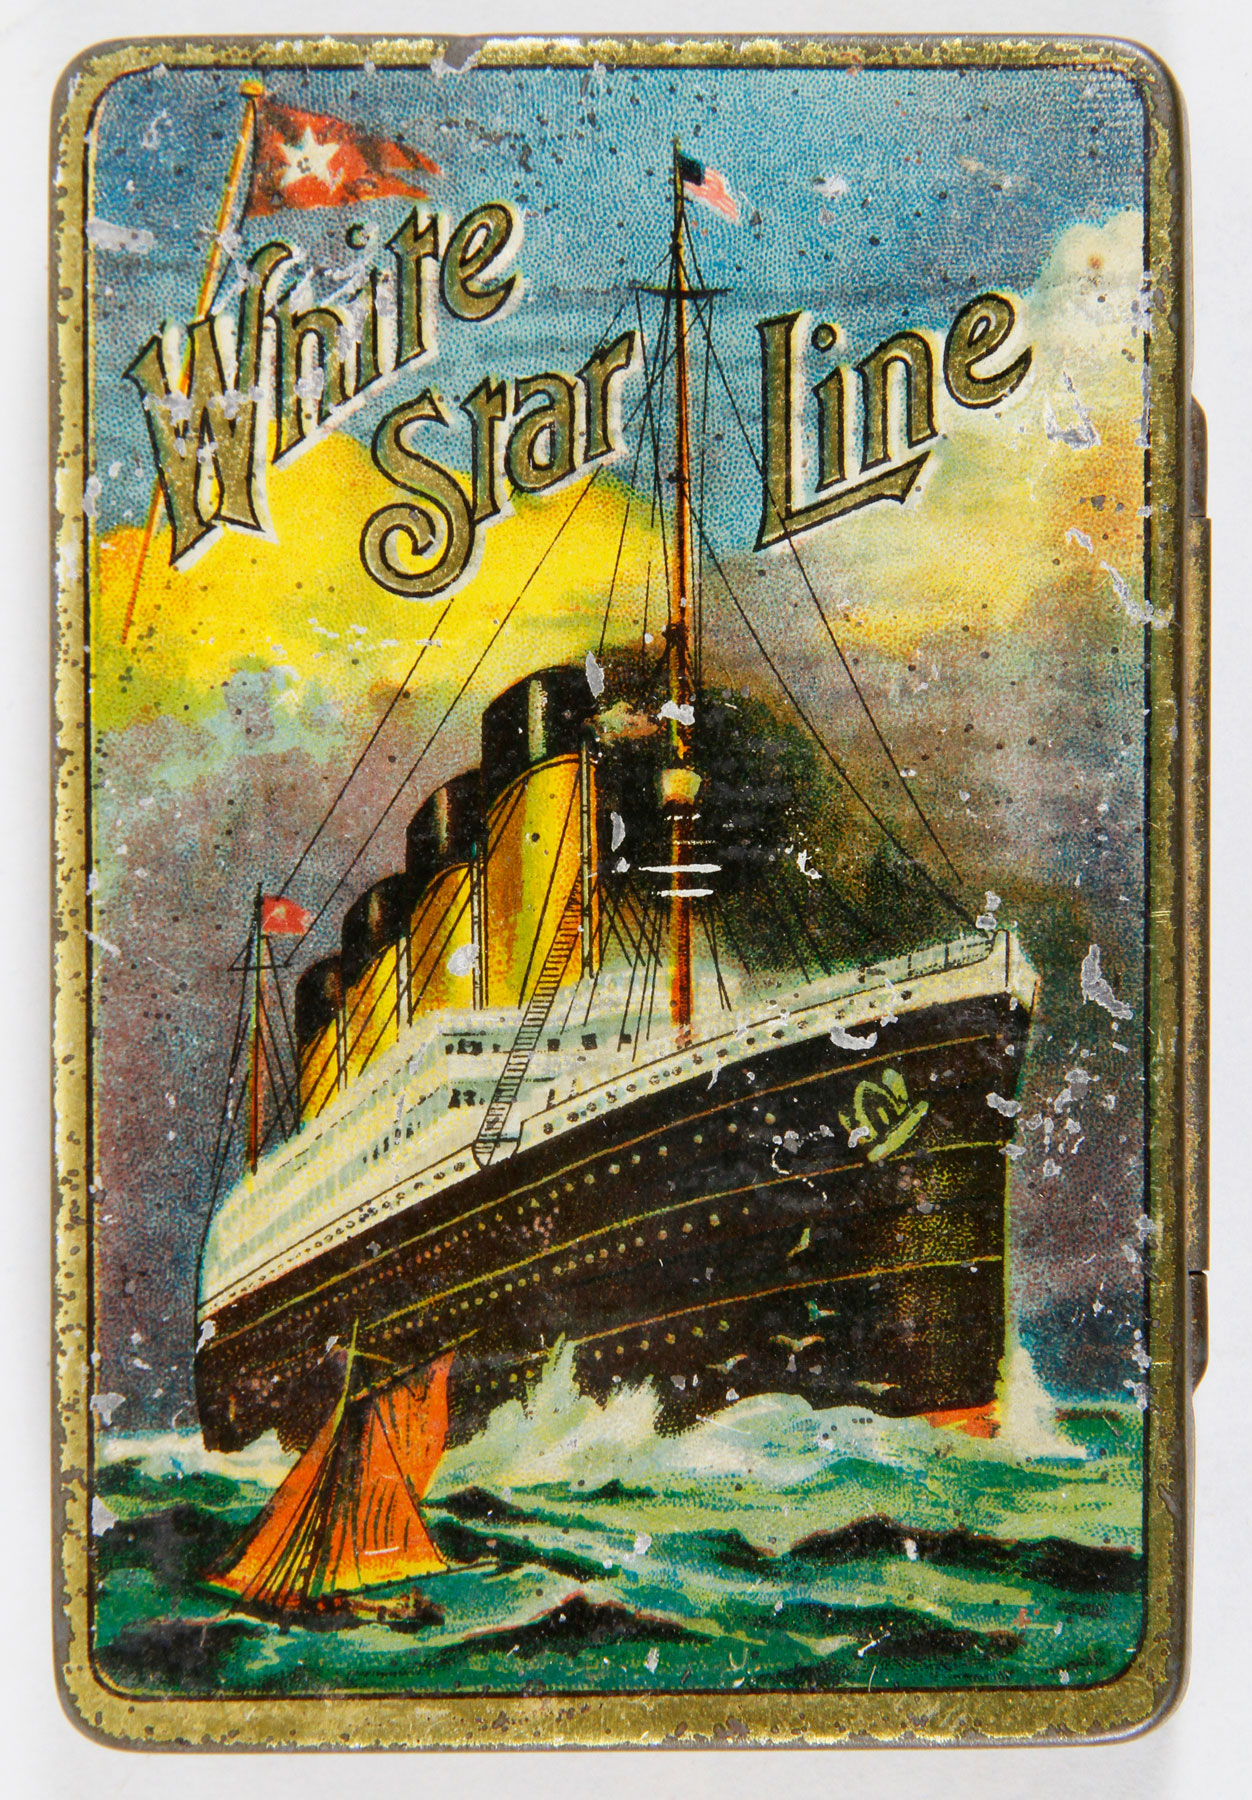 Oceanliner Memorabilia And Nautical Auction Featuring An